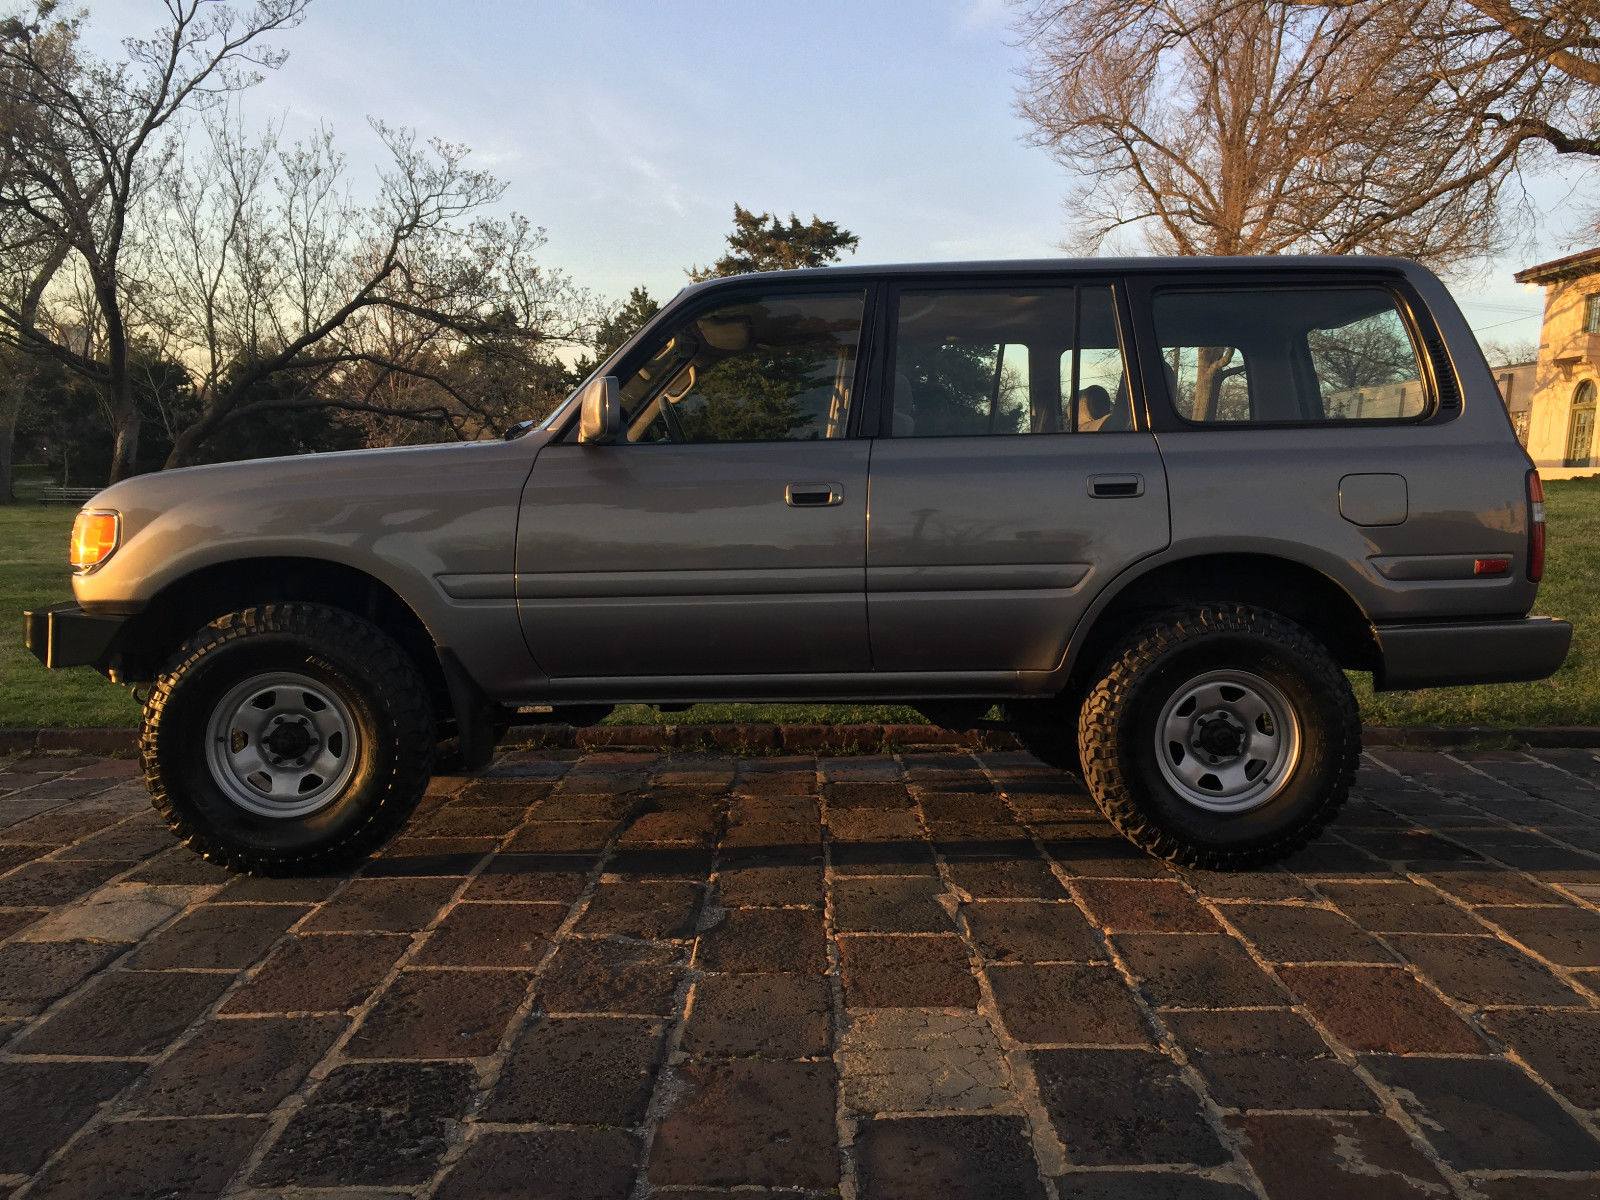 Toyota Land Cruiser Rare Poverty Pack in addition Product product id 267 besides Mopar Dodge Charger Sema 2012 further Golf together with Fiat 500 Beach Cruiser. on fiat 500 fender flares